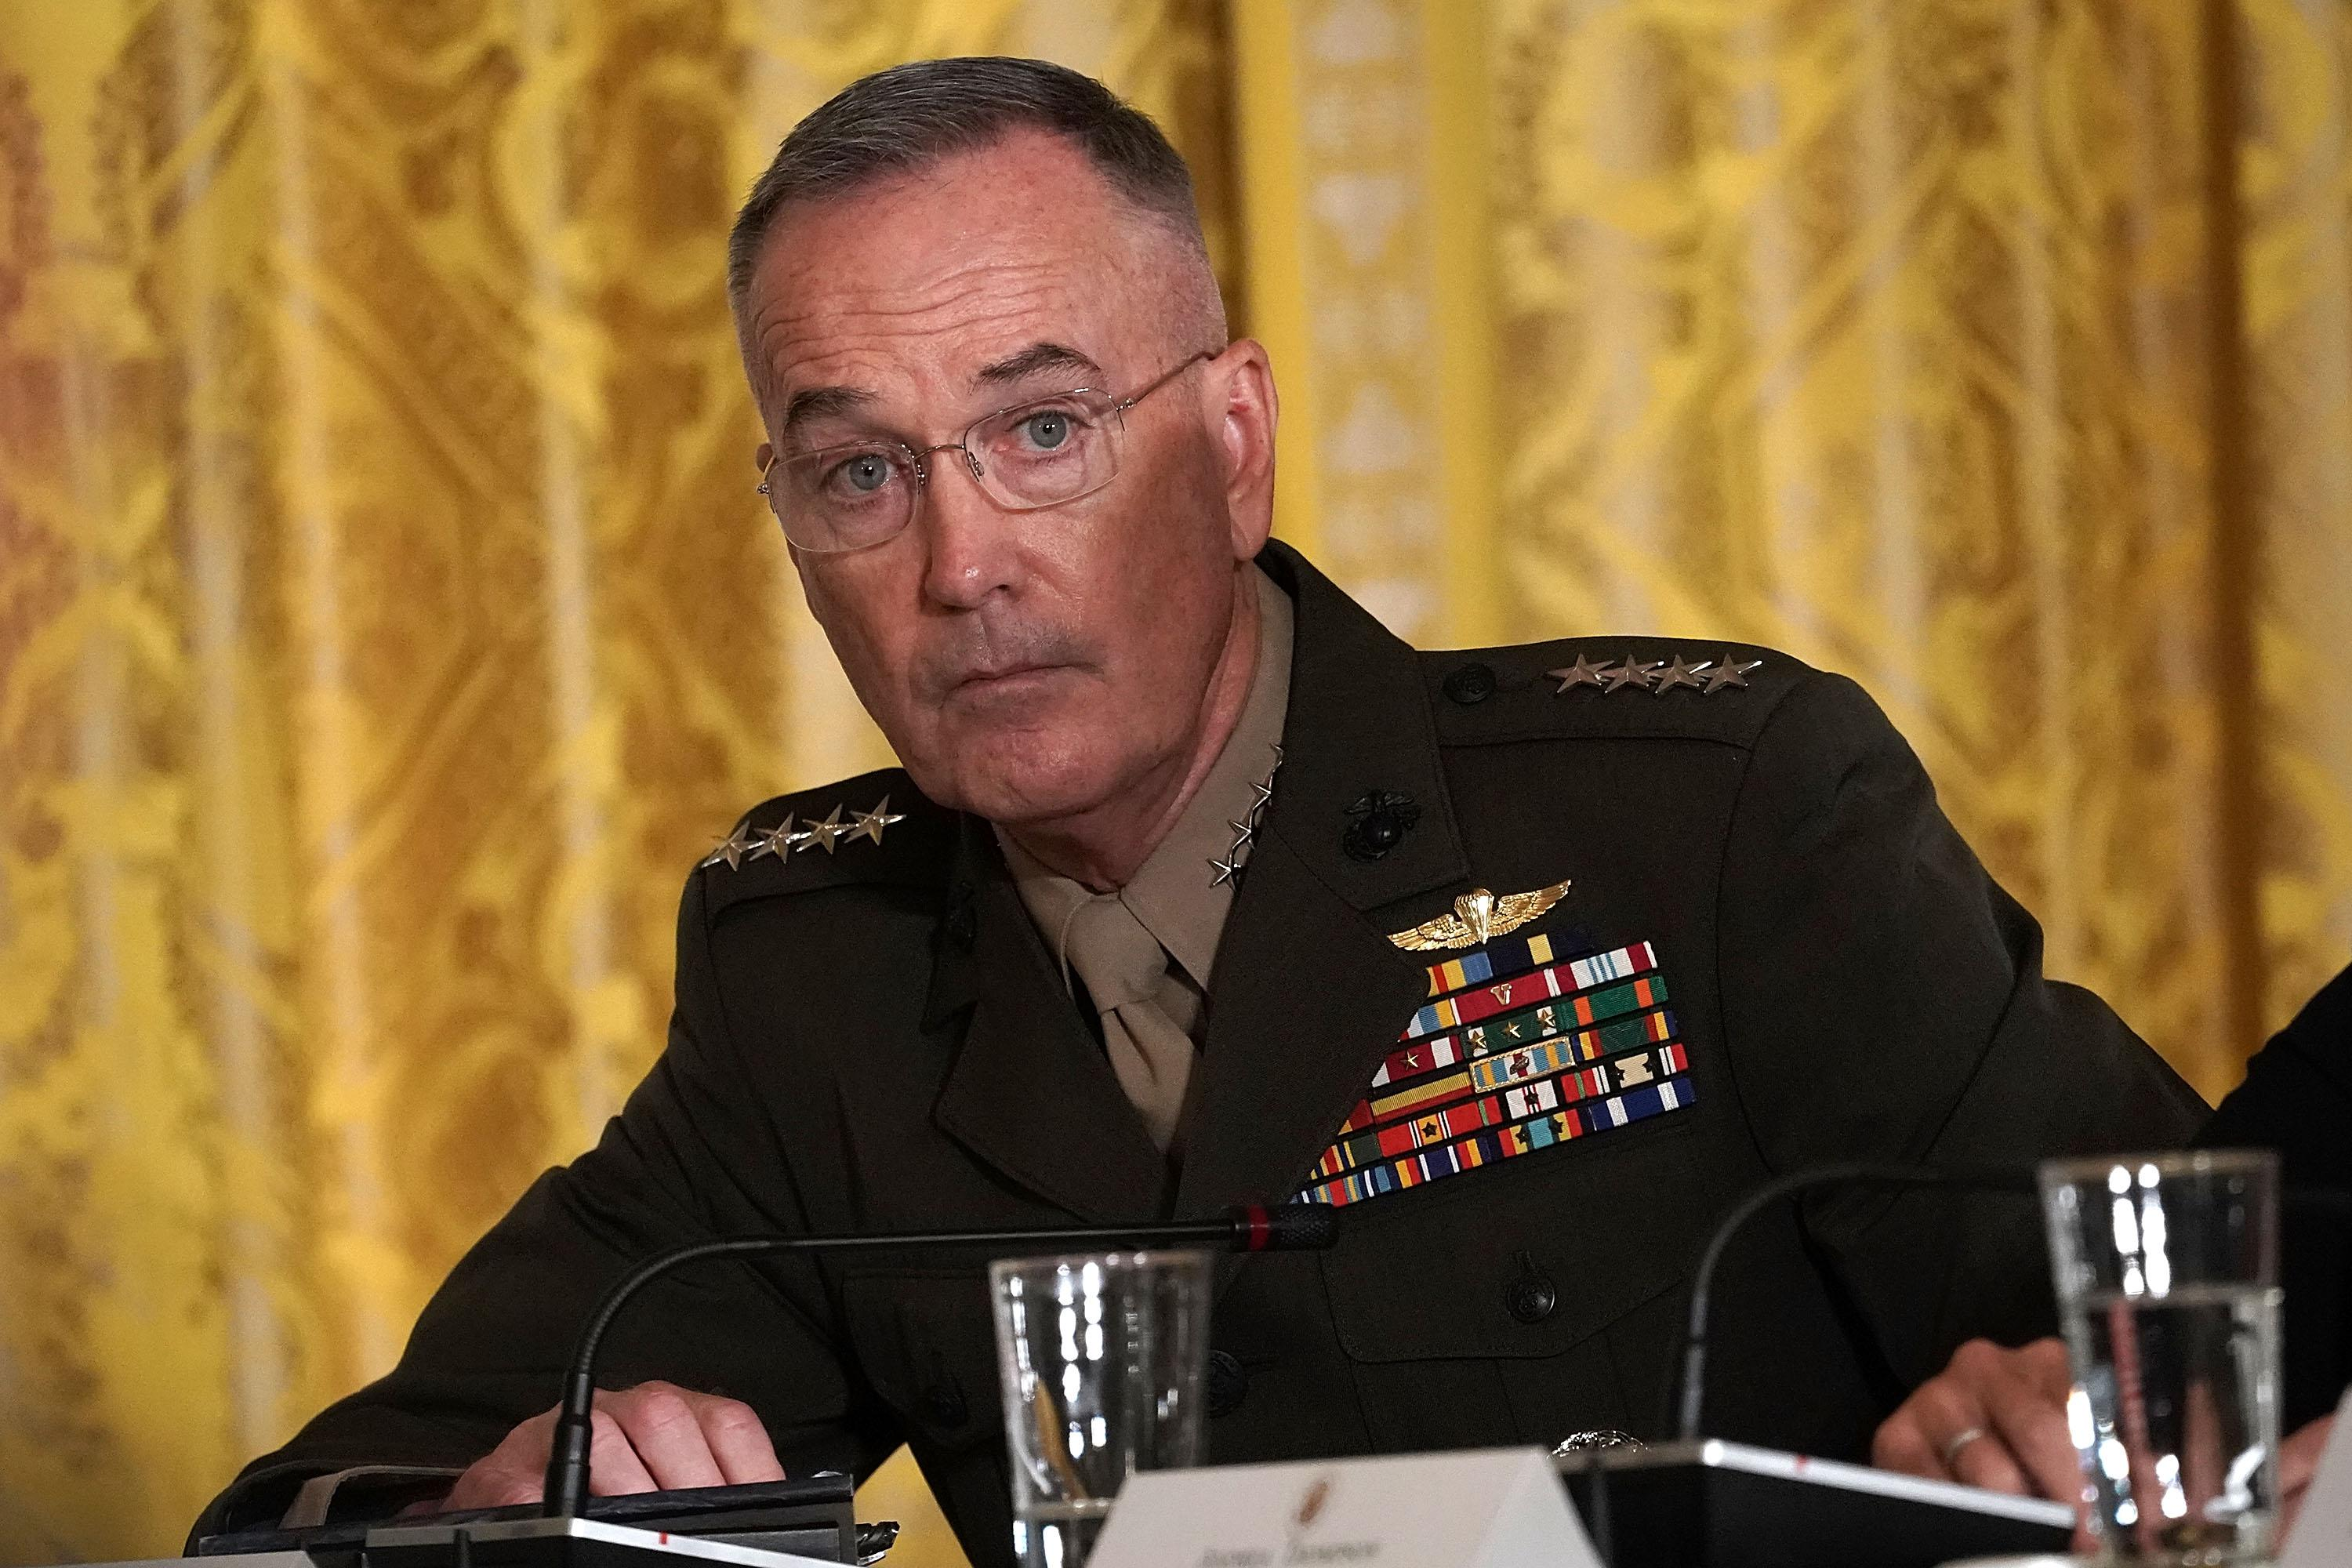 Gen. Joseph Dunford listens during a meeting of the National Space Council at the East Room of the White House.